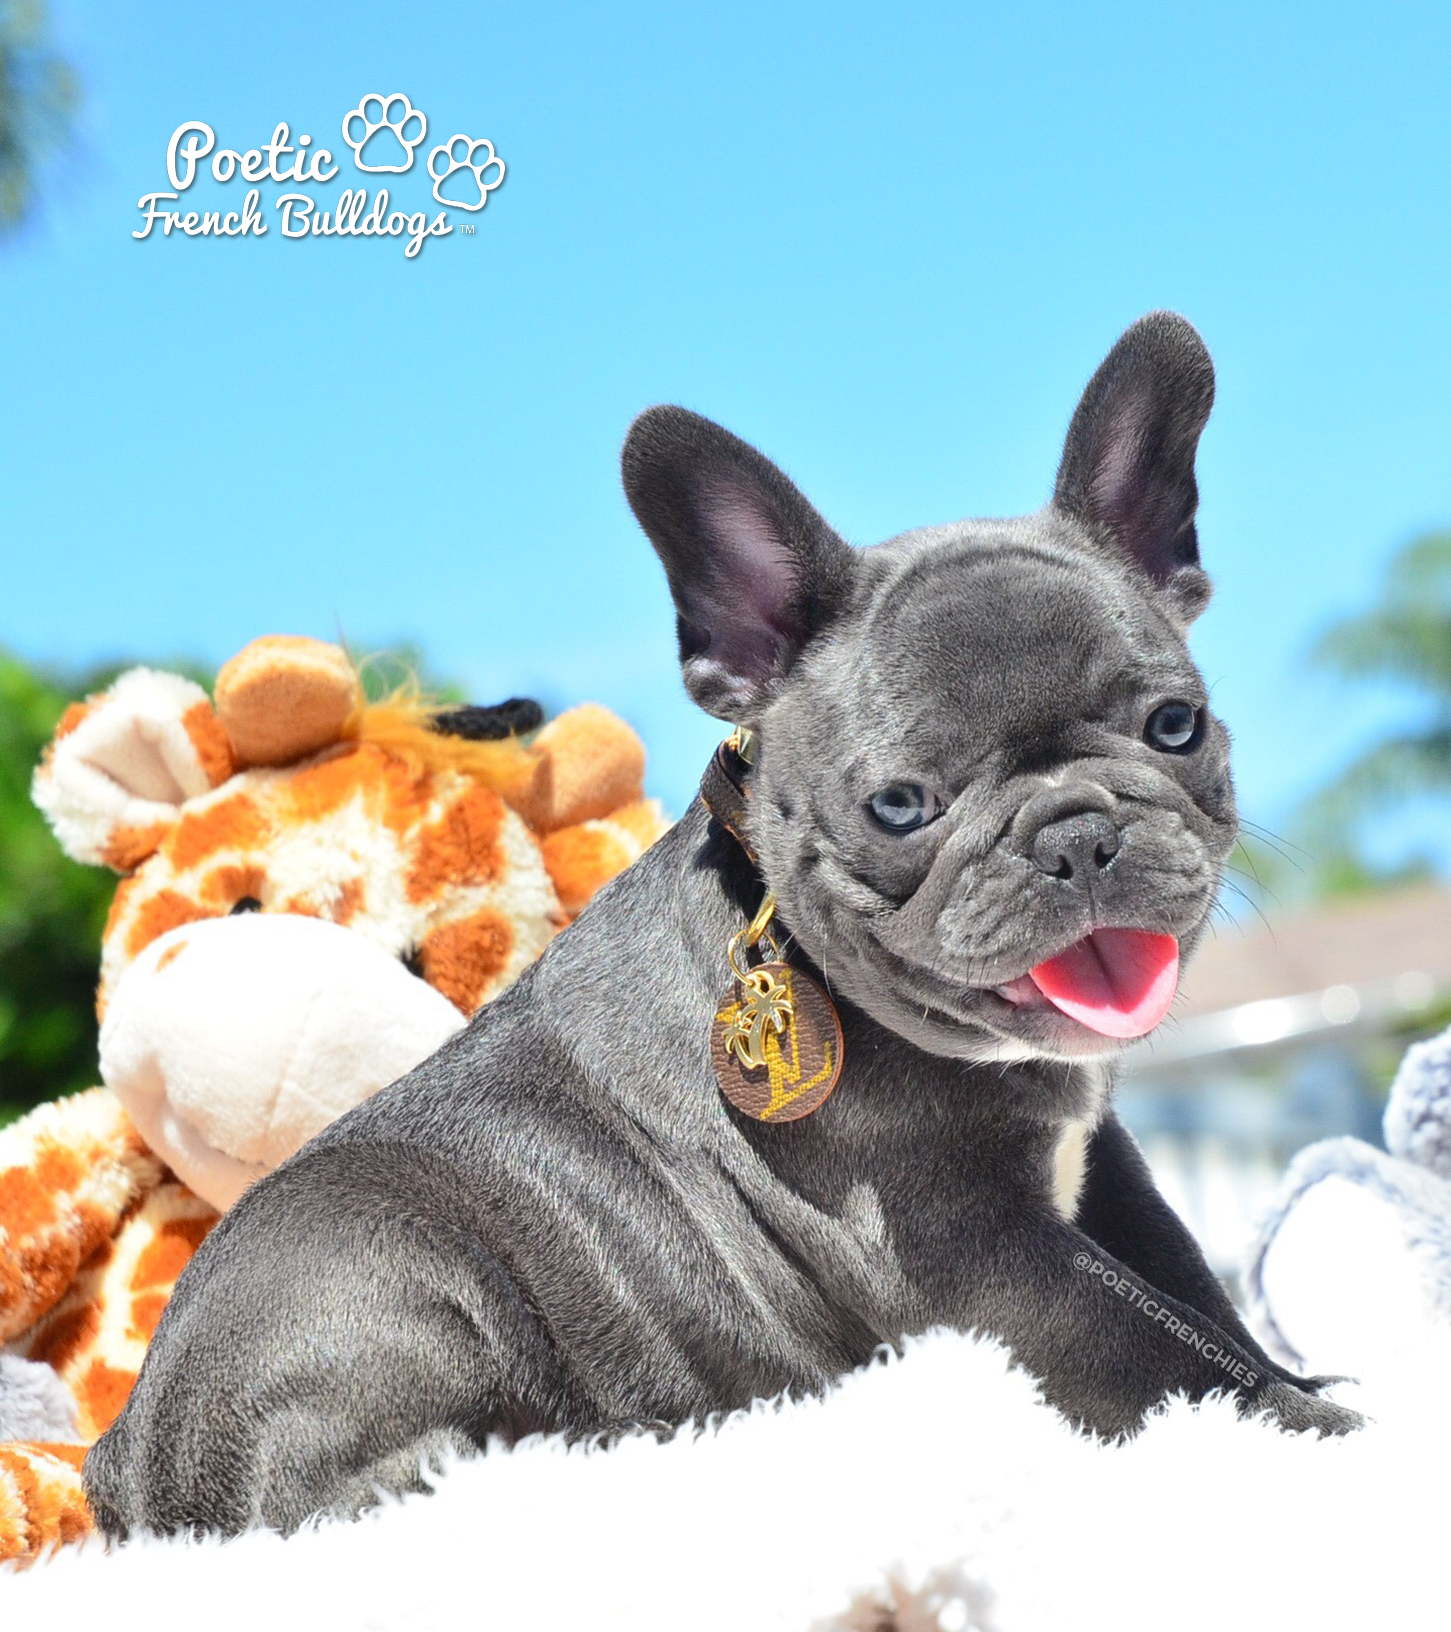 Basil Solid Blue Male Available To Loving Home Www Poeticfrenchbulldogs Com Frenchbulldog French Bulldog Bulldog French Bulldog Personality